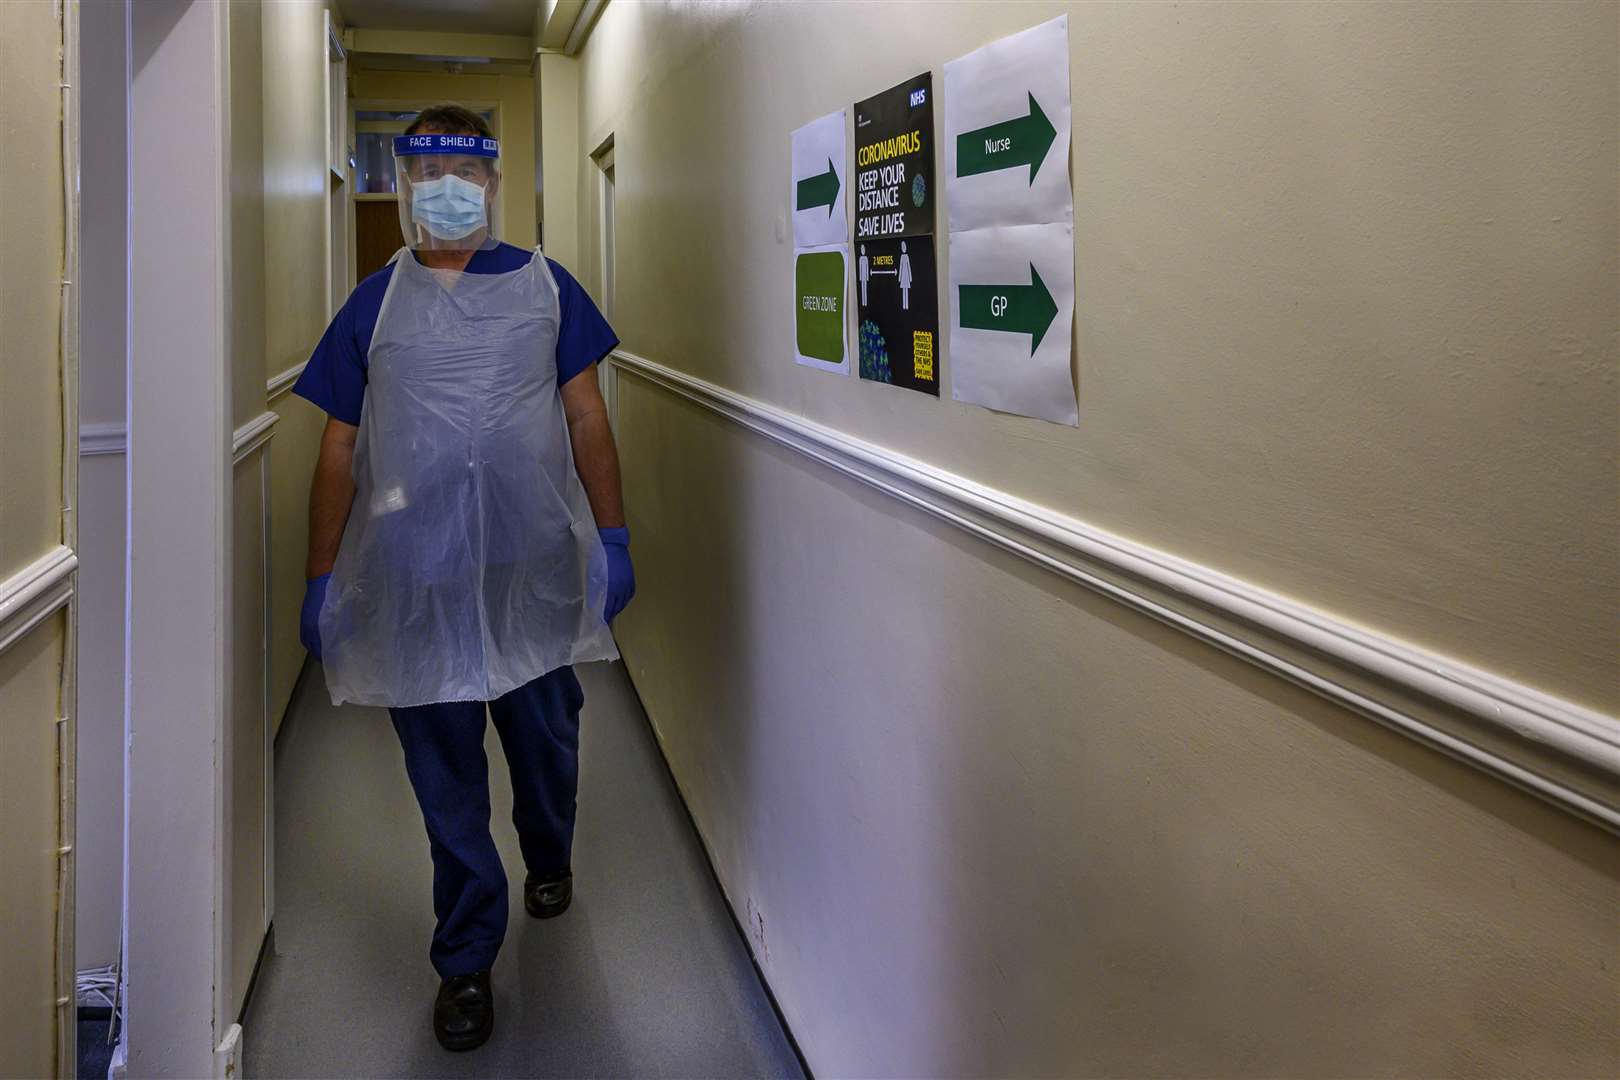 St James Surgery in King's Lynn has narrow corridors which means wheelchairs struggle to pass. Picture: Prabir Mitra